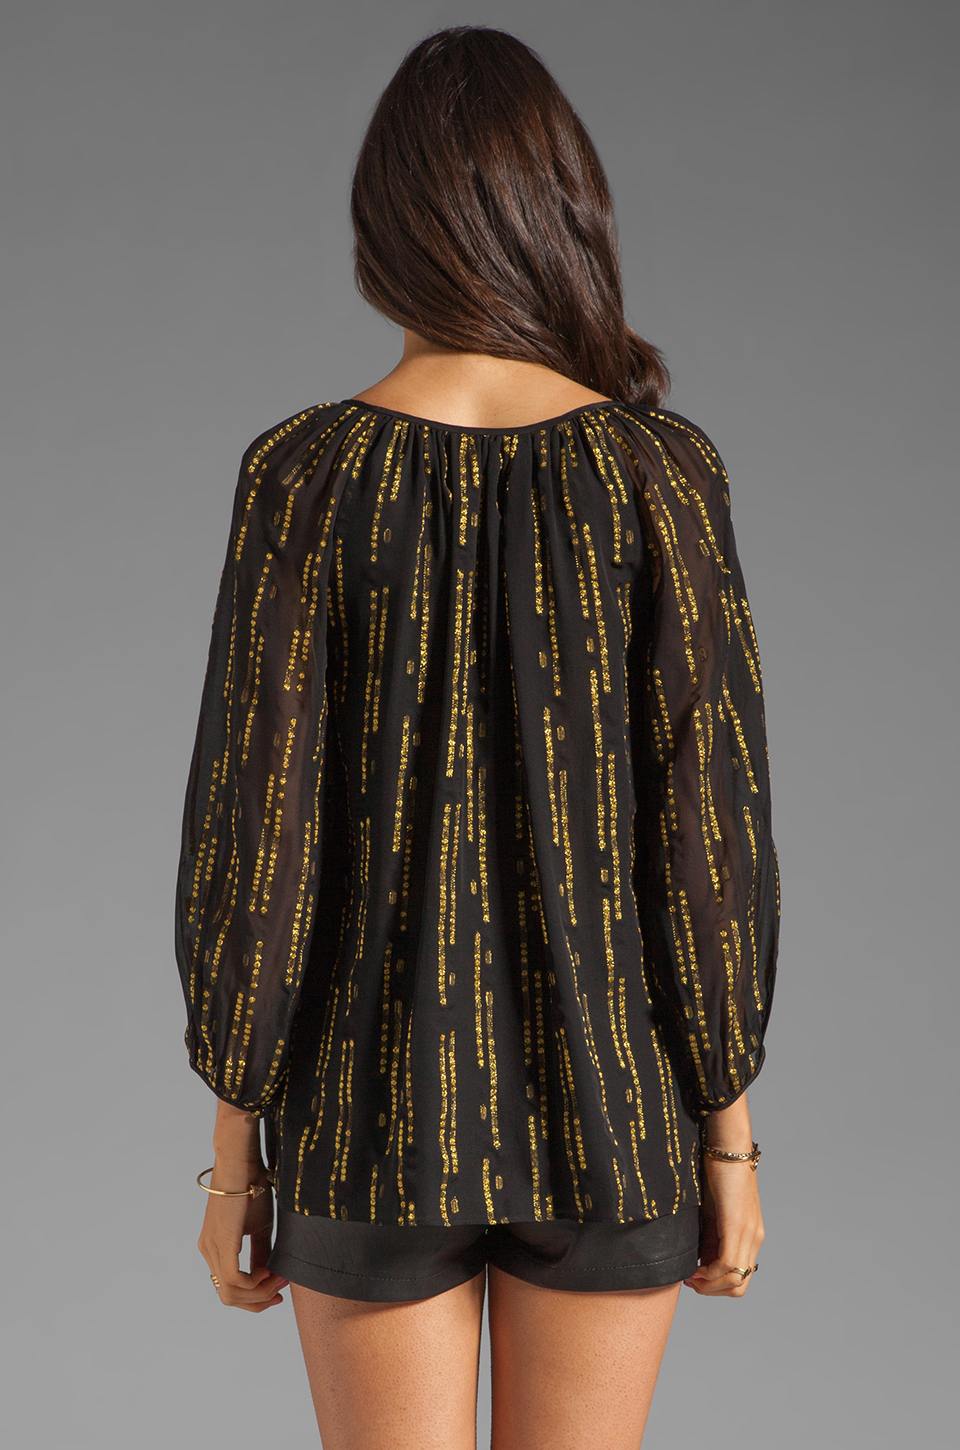 Shoshanna Brookline Lurex Chiffon Renee Blouse in Black/Gold